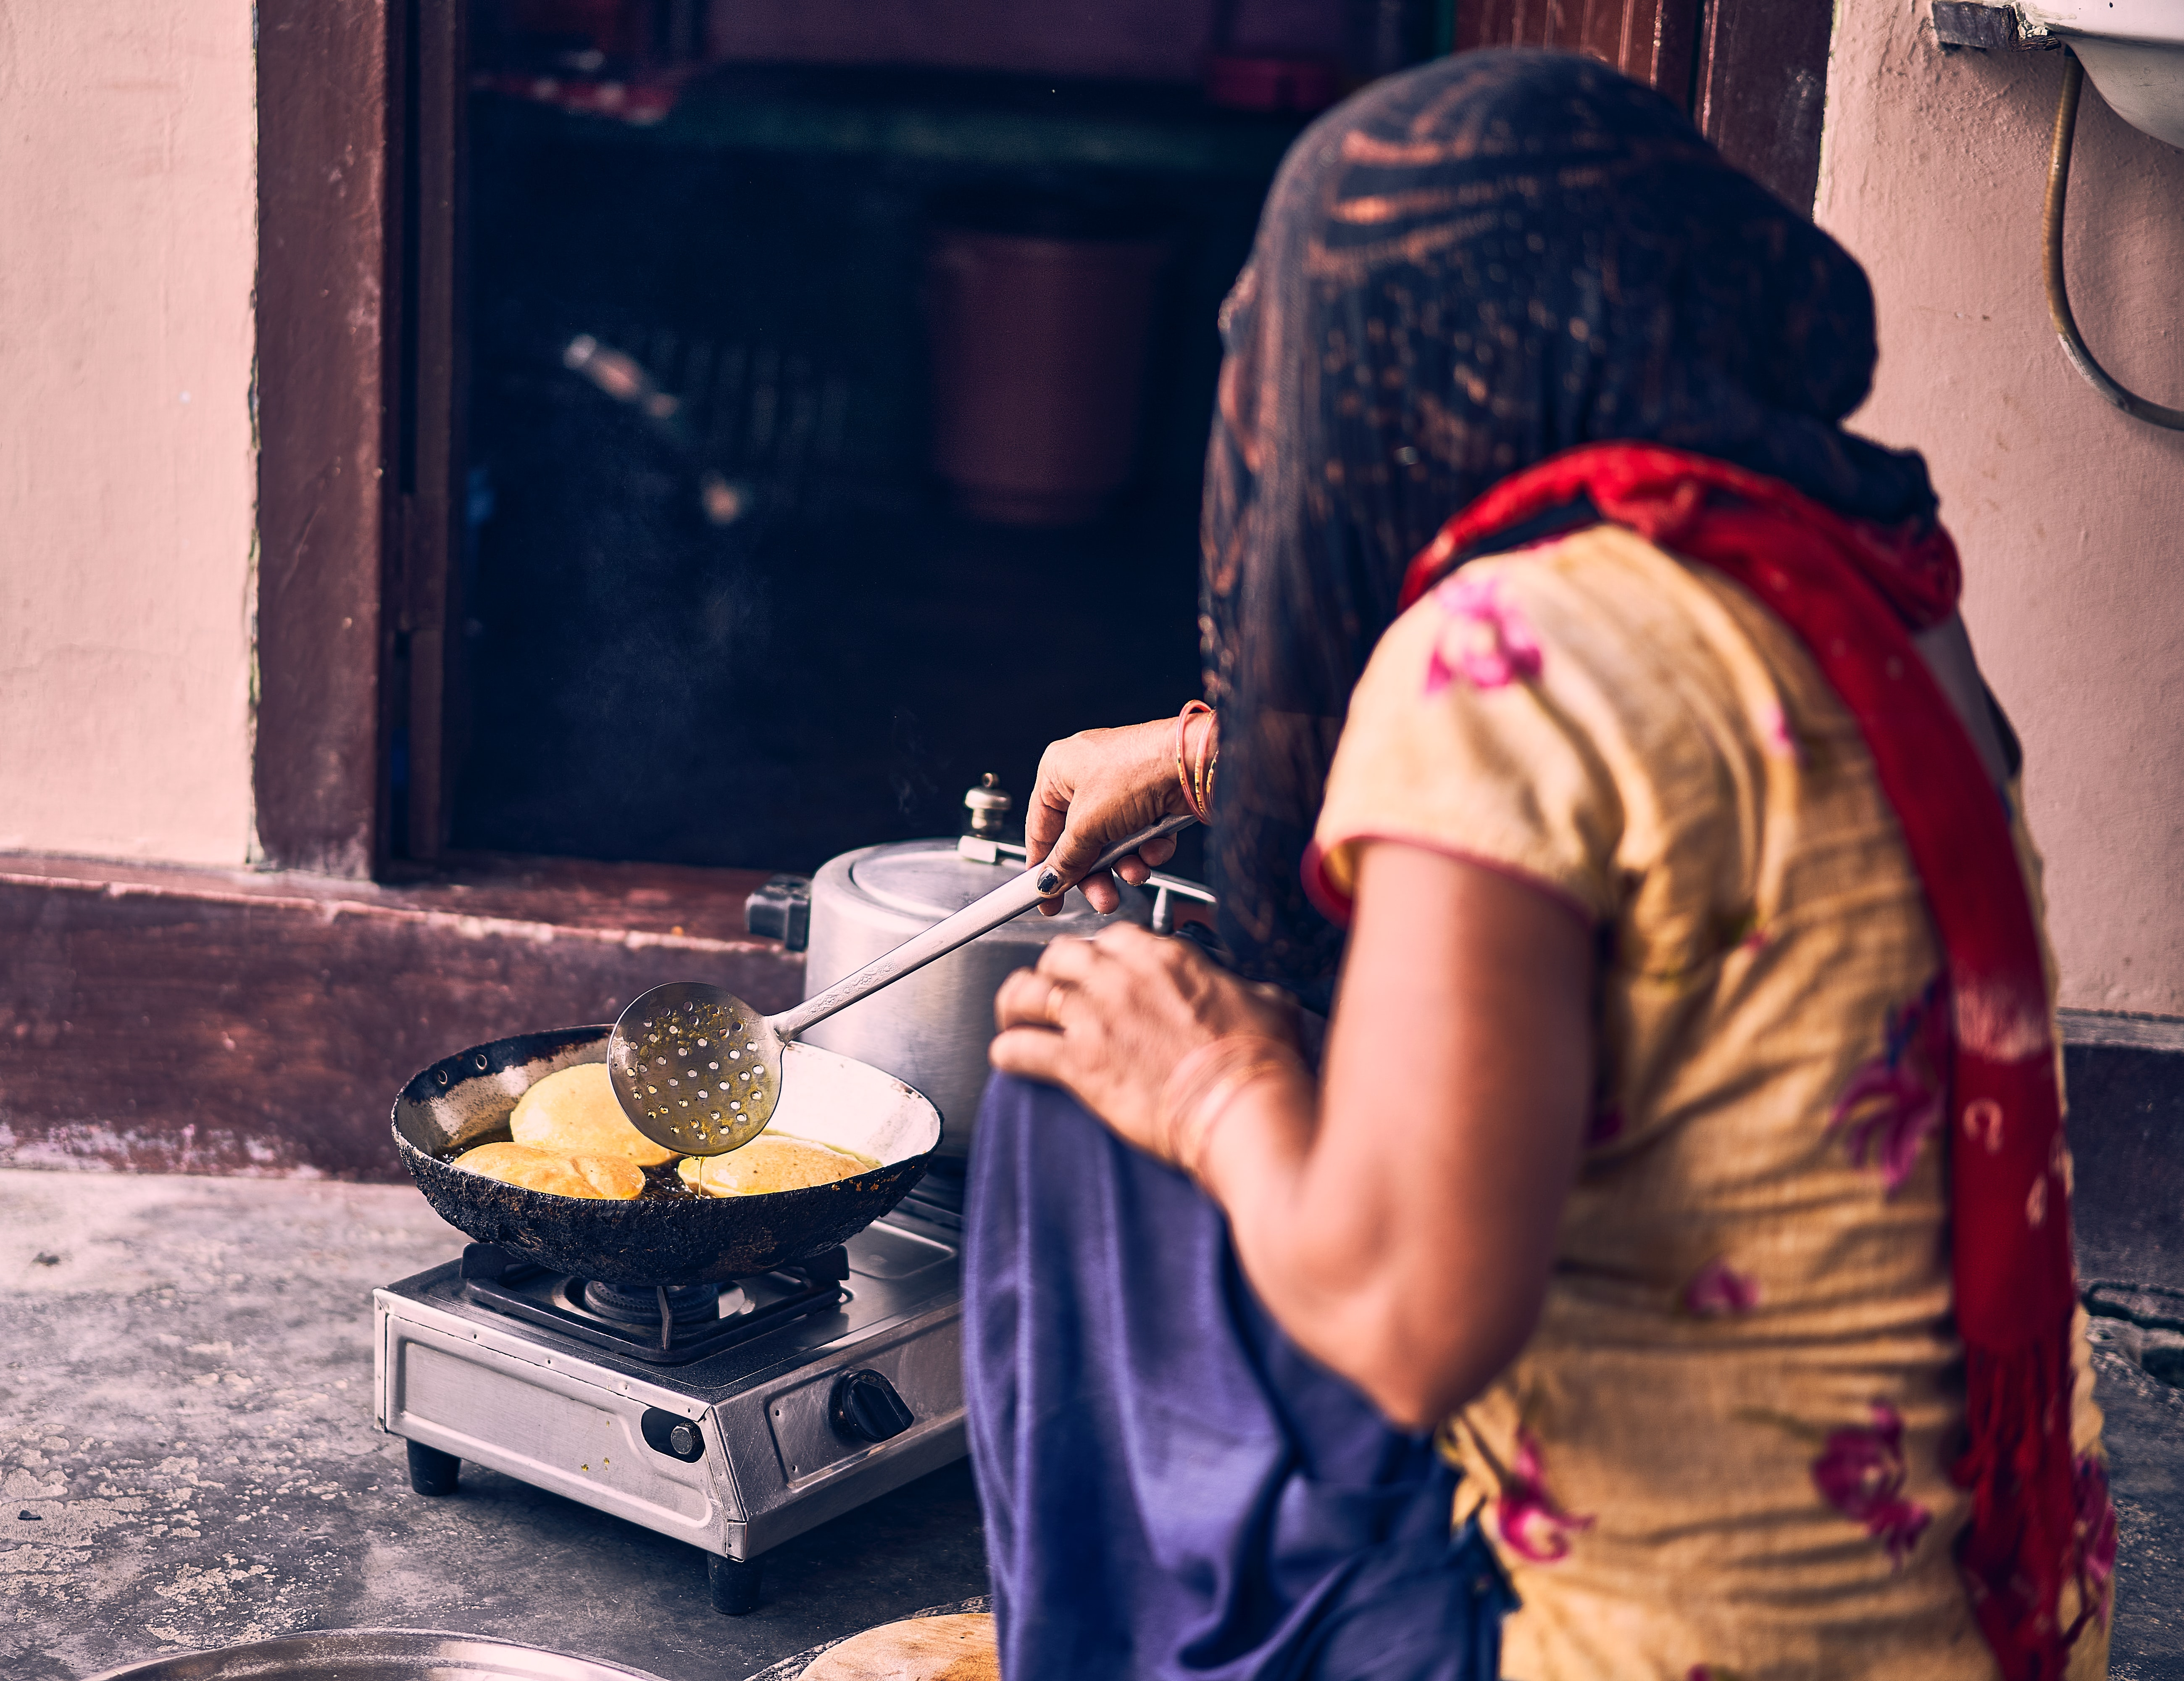 Even if a rural household cooks one or two of its daily meals in electric/induction cookstoves, it helps bring down indoor emissions.Photo by Ashwini Chaudhary/Unsplash.